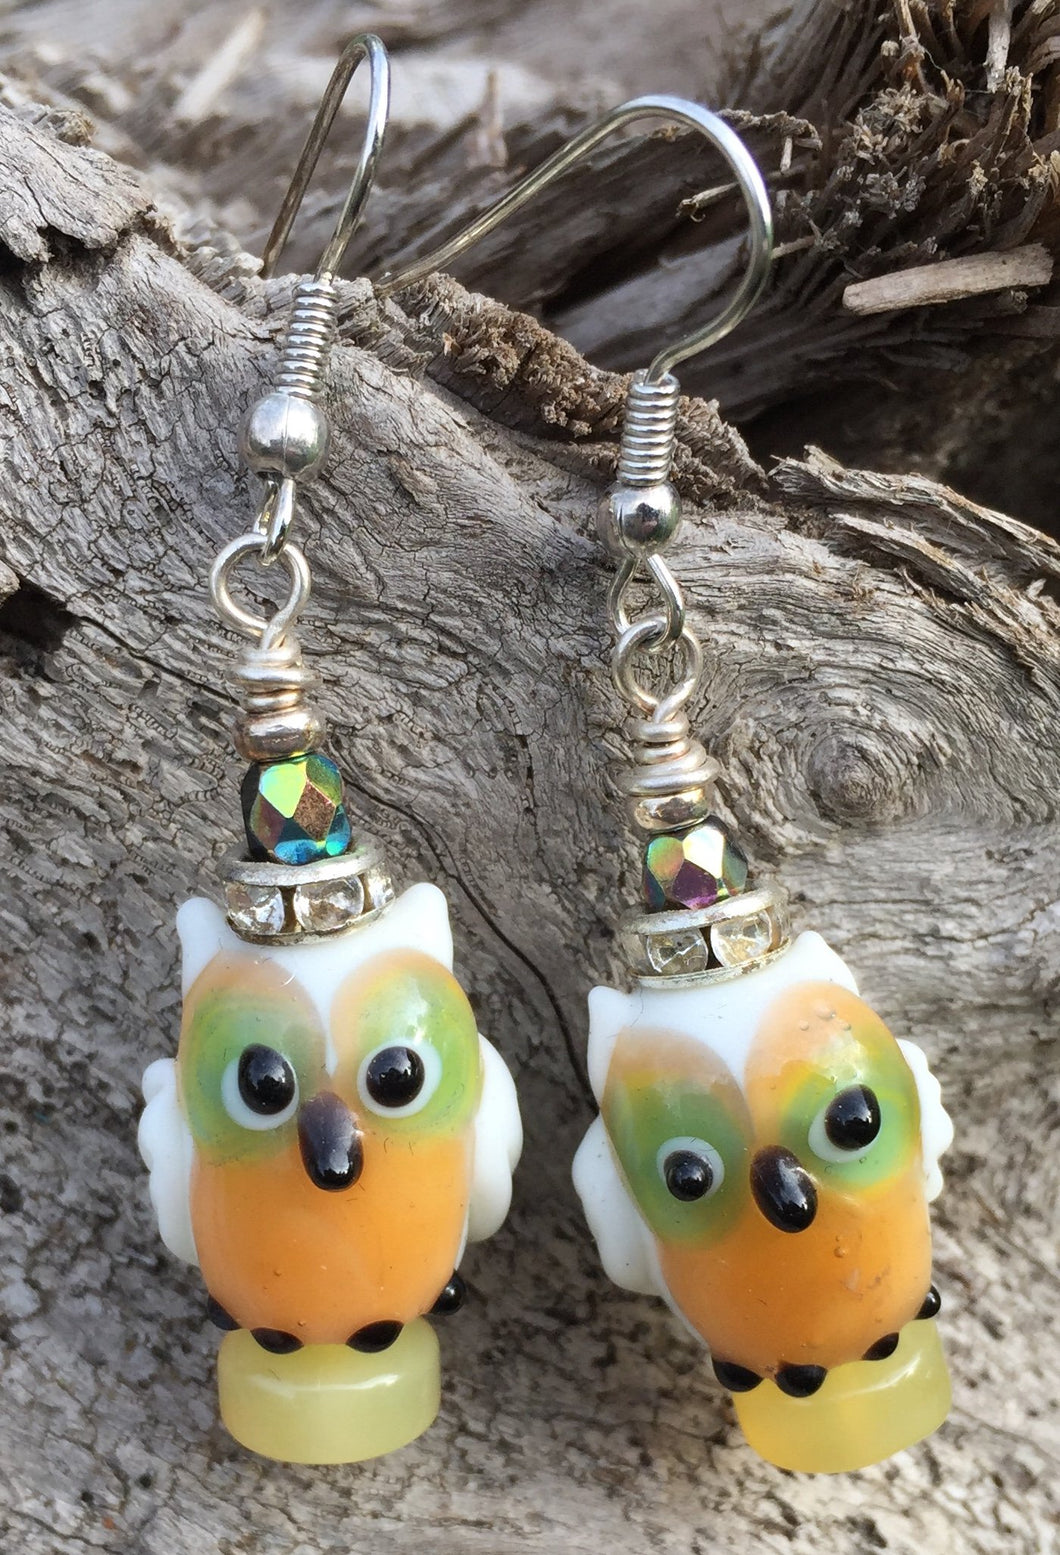 Lampwork Glass Earrings - White, Peach, Olive Owls